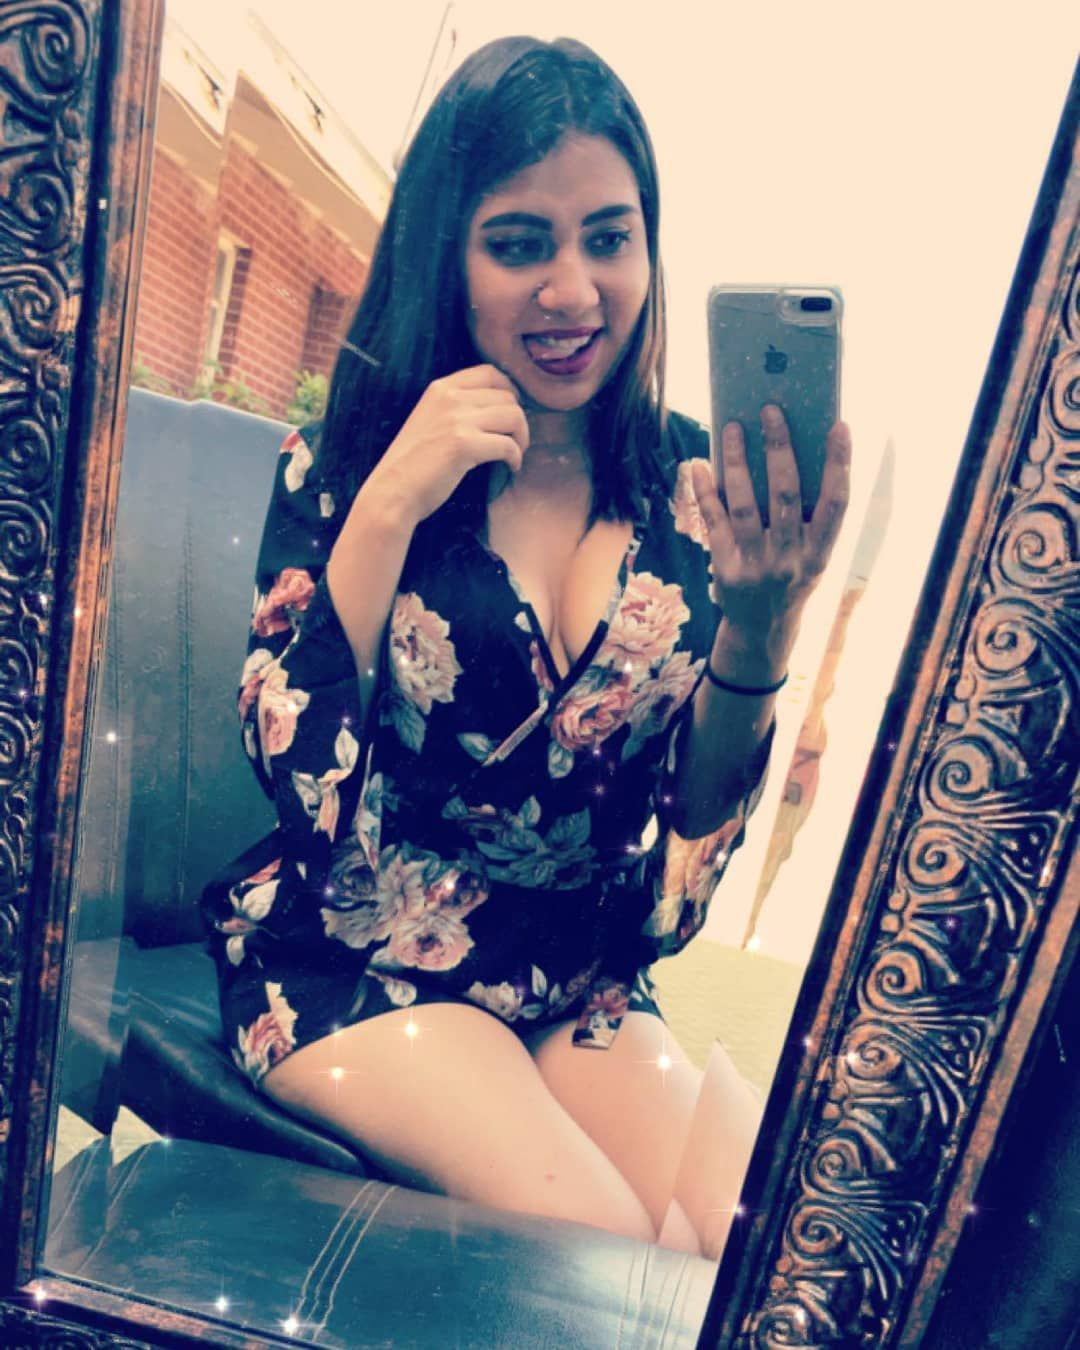 Happy Easter/April Fools Day ❤  #scorpio#novemberbaby#latina#holidays#shortgirl#romper#floral#iphone#mirrorselfie#positive#selflove#donthate#greatday#easter#aprilfools#ciao#amor#happygirl#feelingcute#shortgirl#loveyourself#dolledup#outdoors#tongueout#takingpics#dirtymirror#photooftheday#gutenmorgen#buongiorno